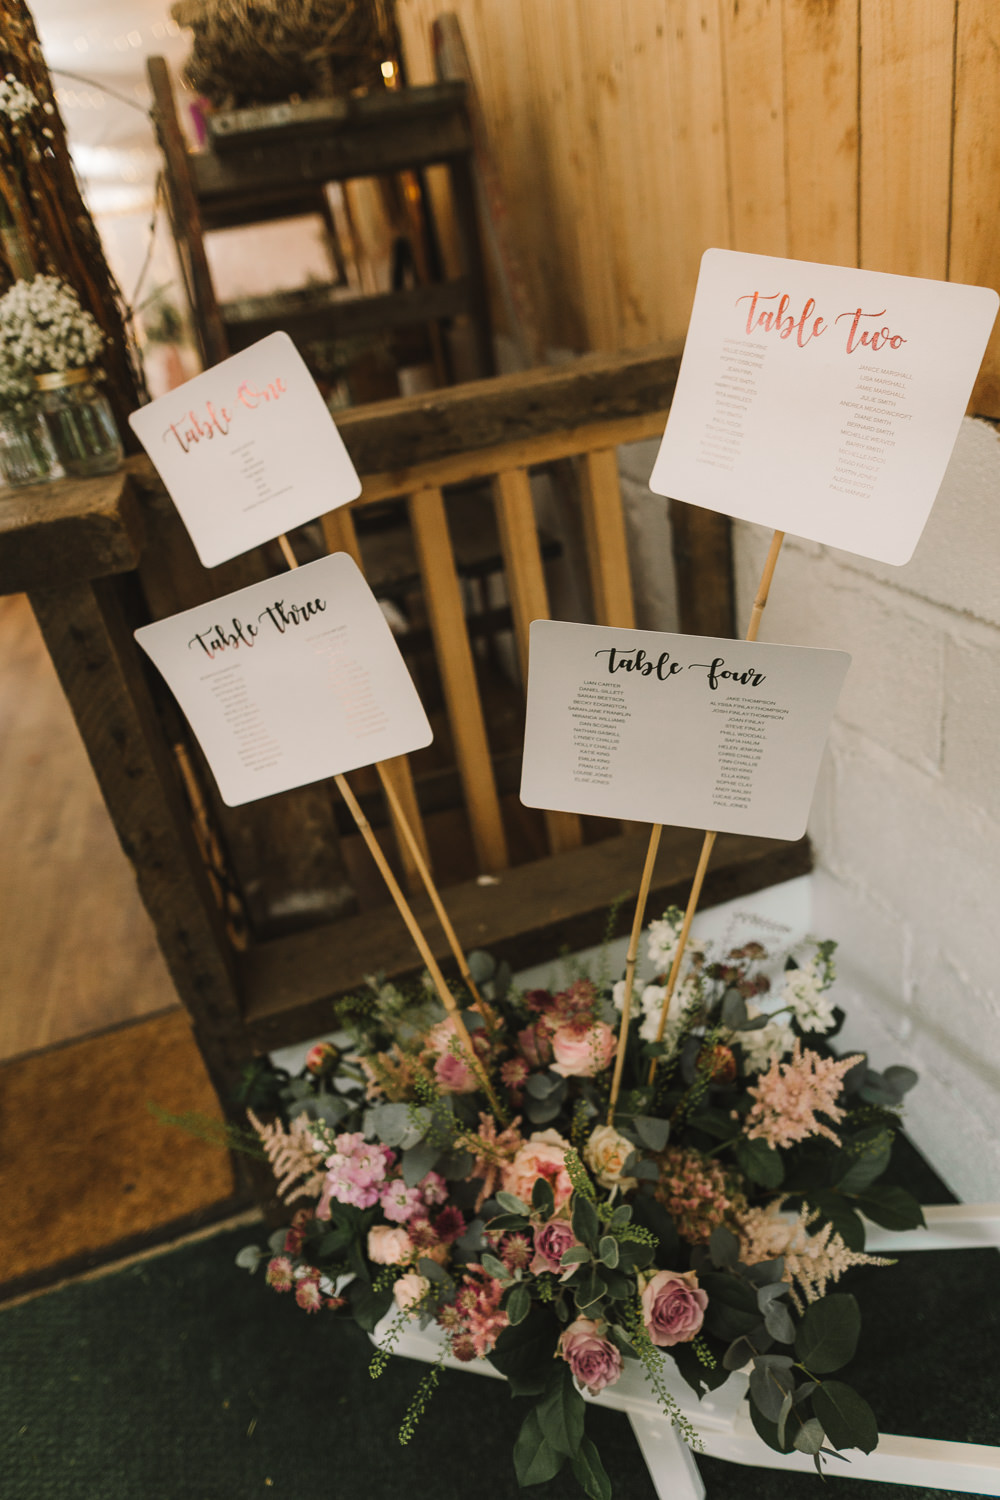 Seating Plan Table Chart Sticks Flowers Wellbeing Farm Wedding Anna Wood Photography